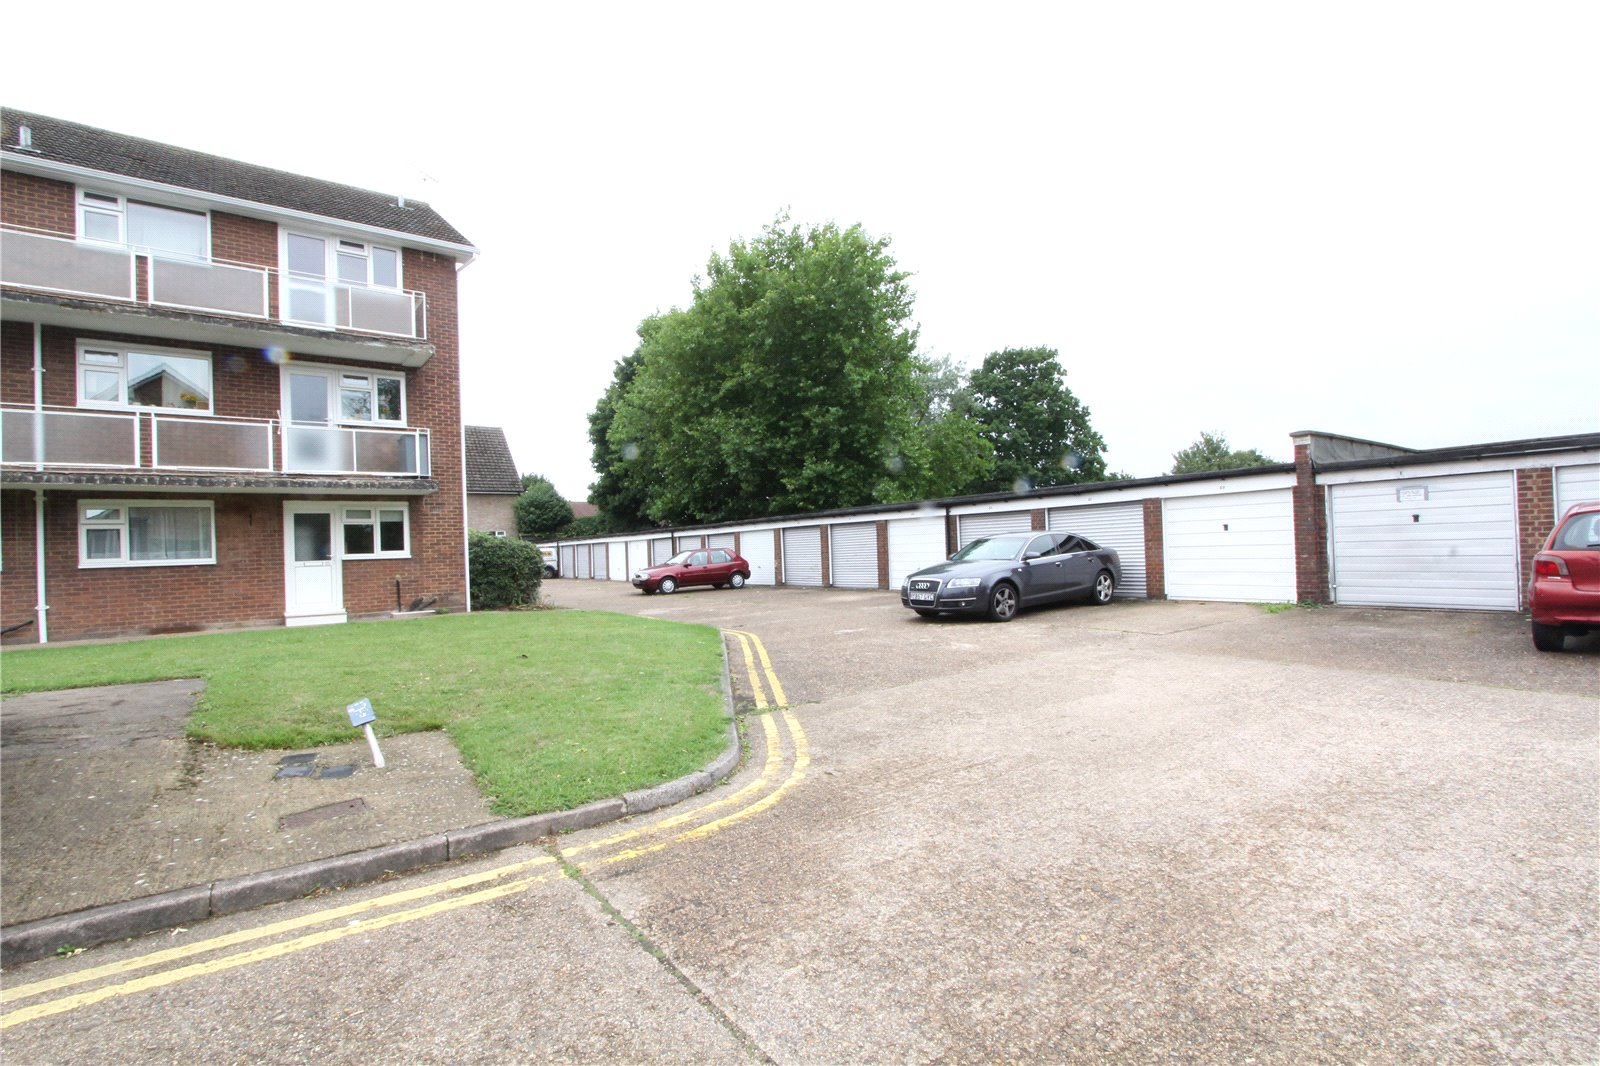 2 Bedrooms Maisonette Flat for sale in Hughenden Road St. Albans Hertfordshire AL4